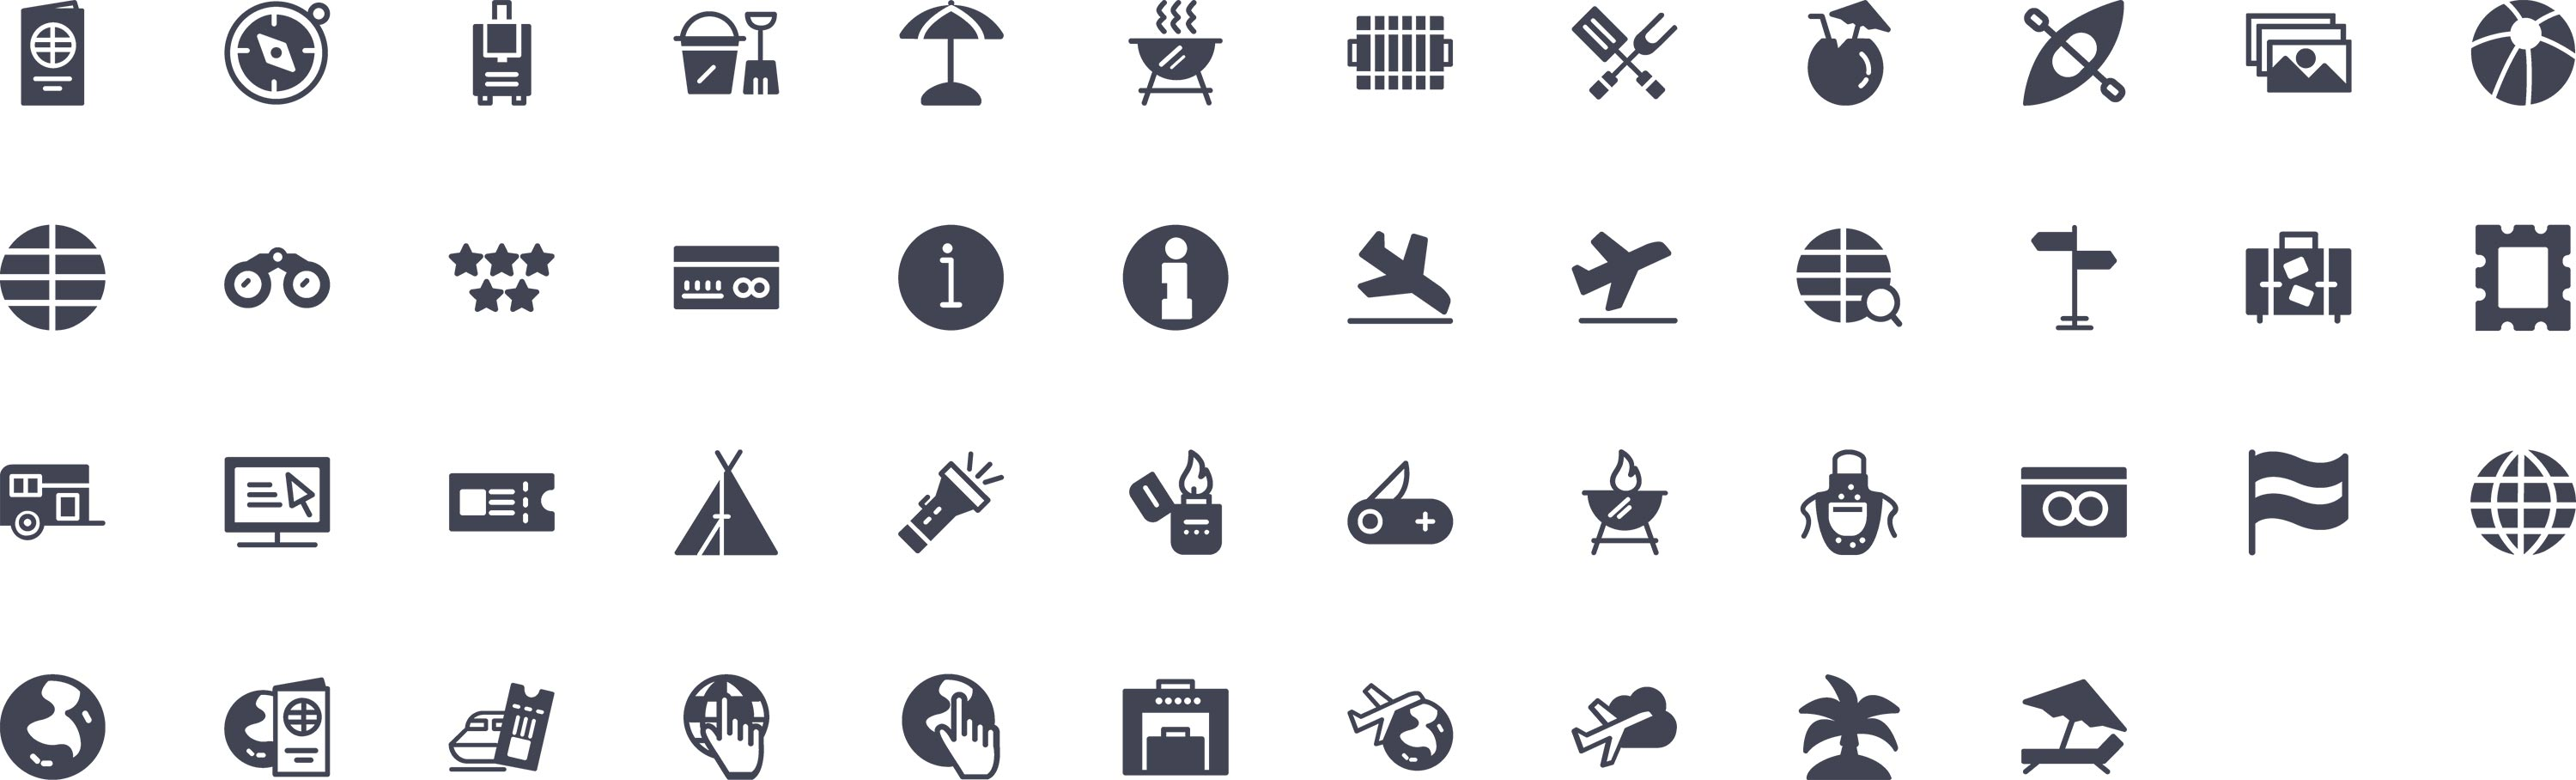 Travel Essentials Glyph Icons